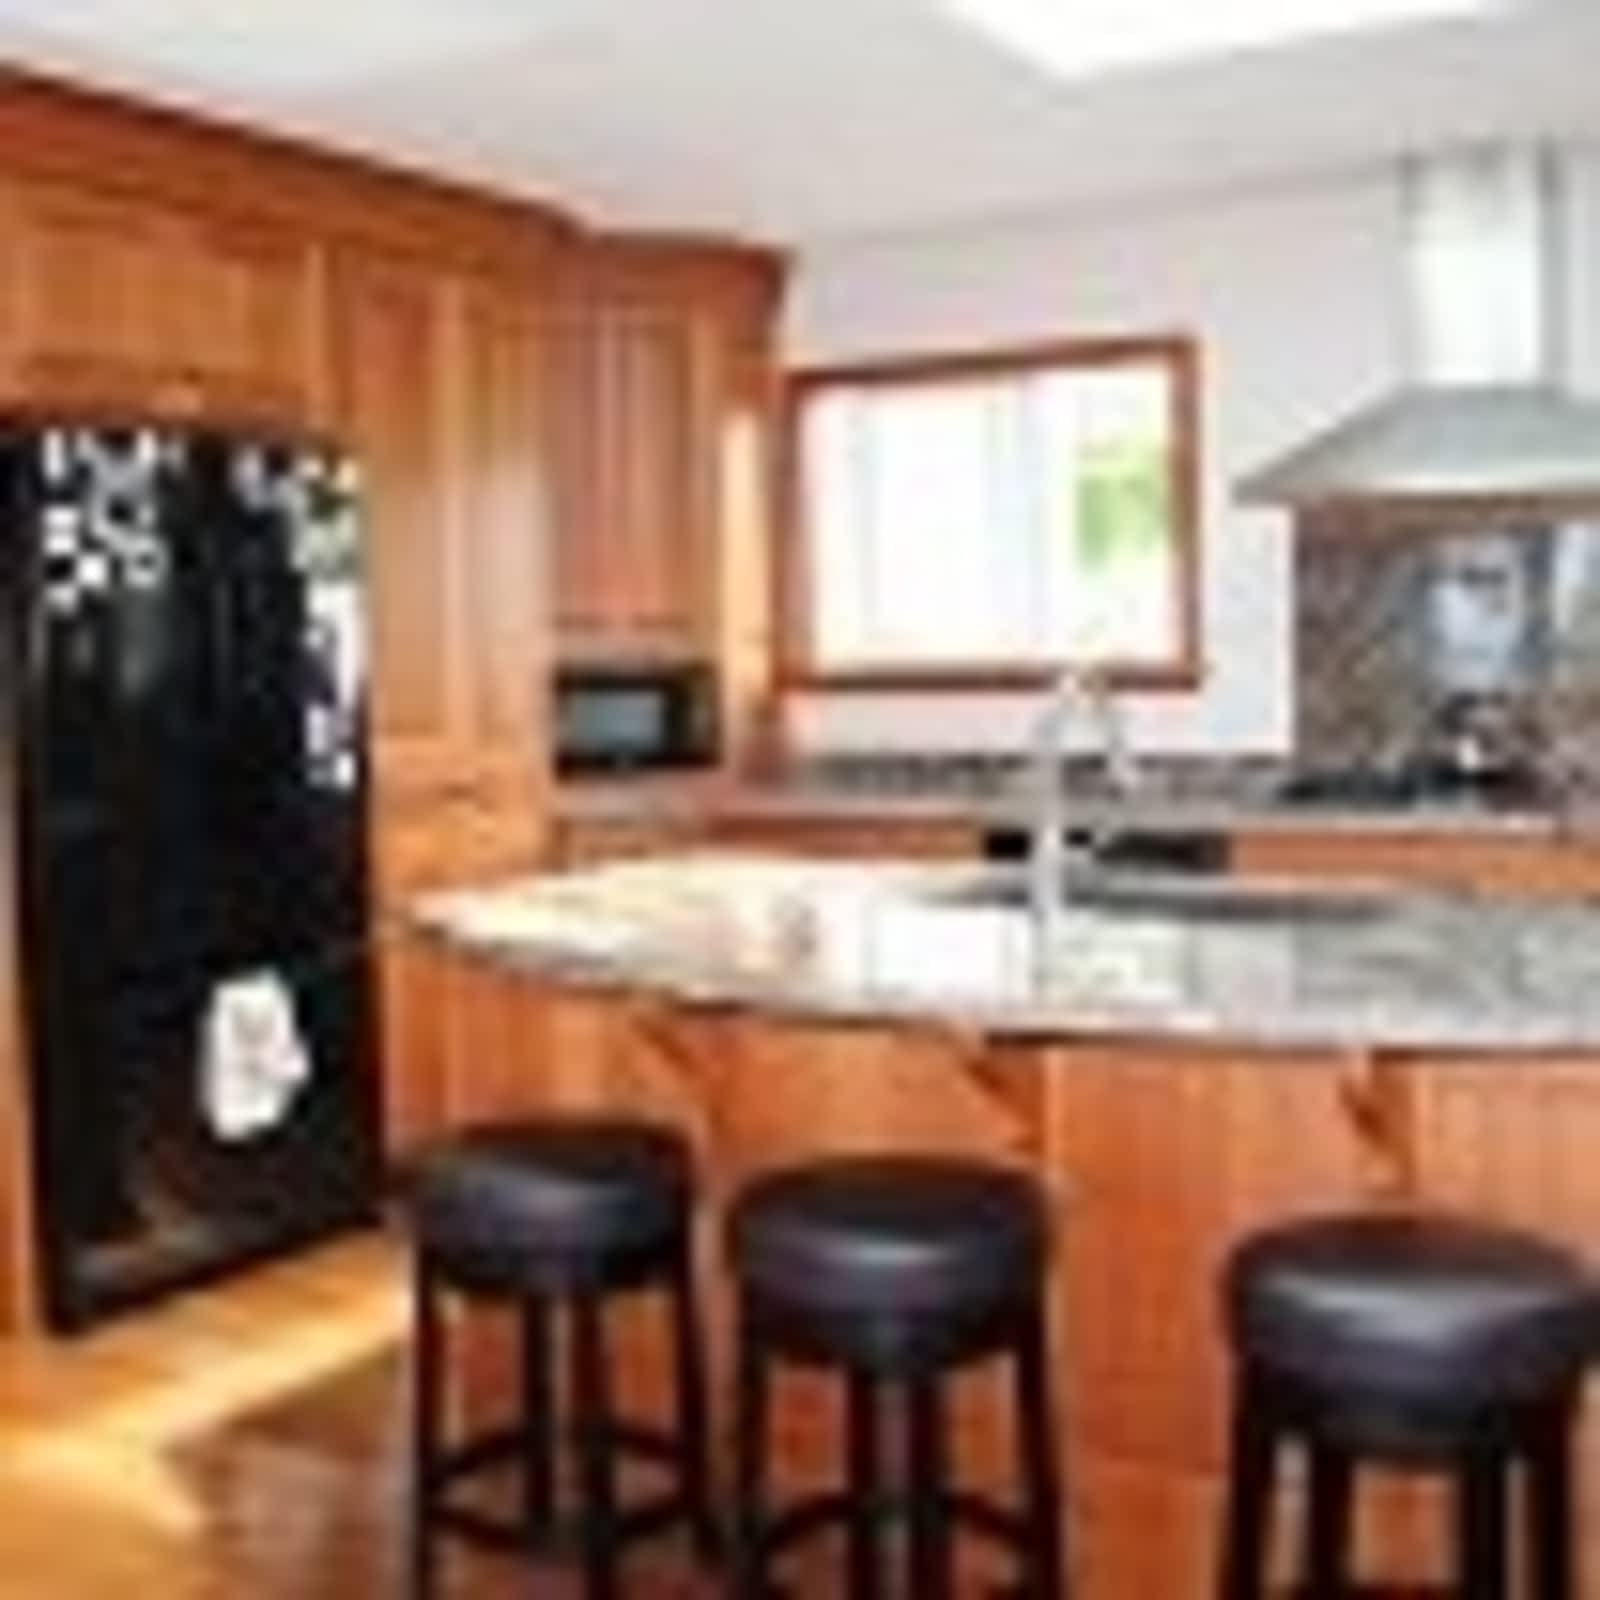 heirloom types countertop kitchens ideas designs decorating counters tips room countertops best design kitchen of wood